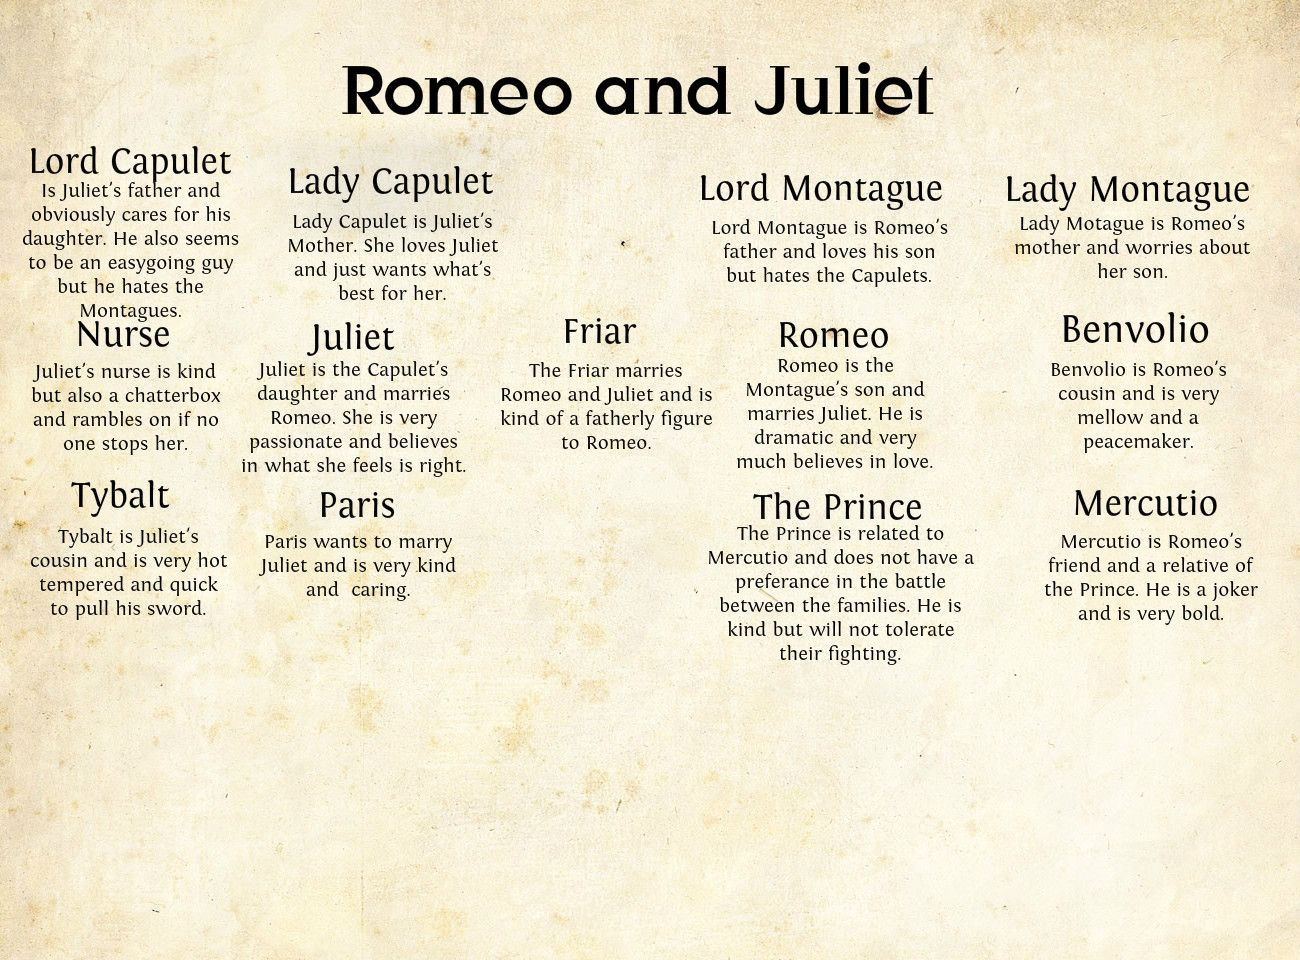 Romeo And Juliet Character Tree  Google Search  Just Teachin  Romeo And Juliet Character Map